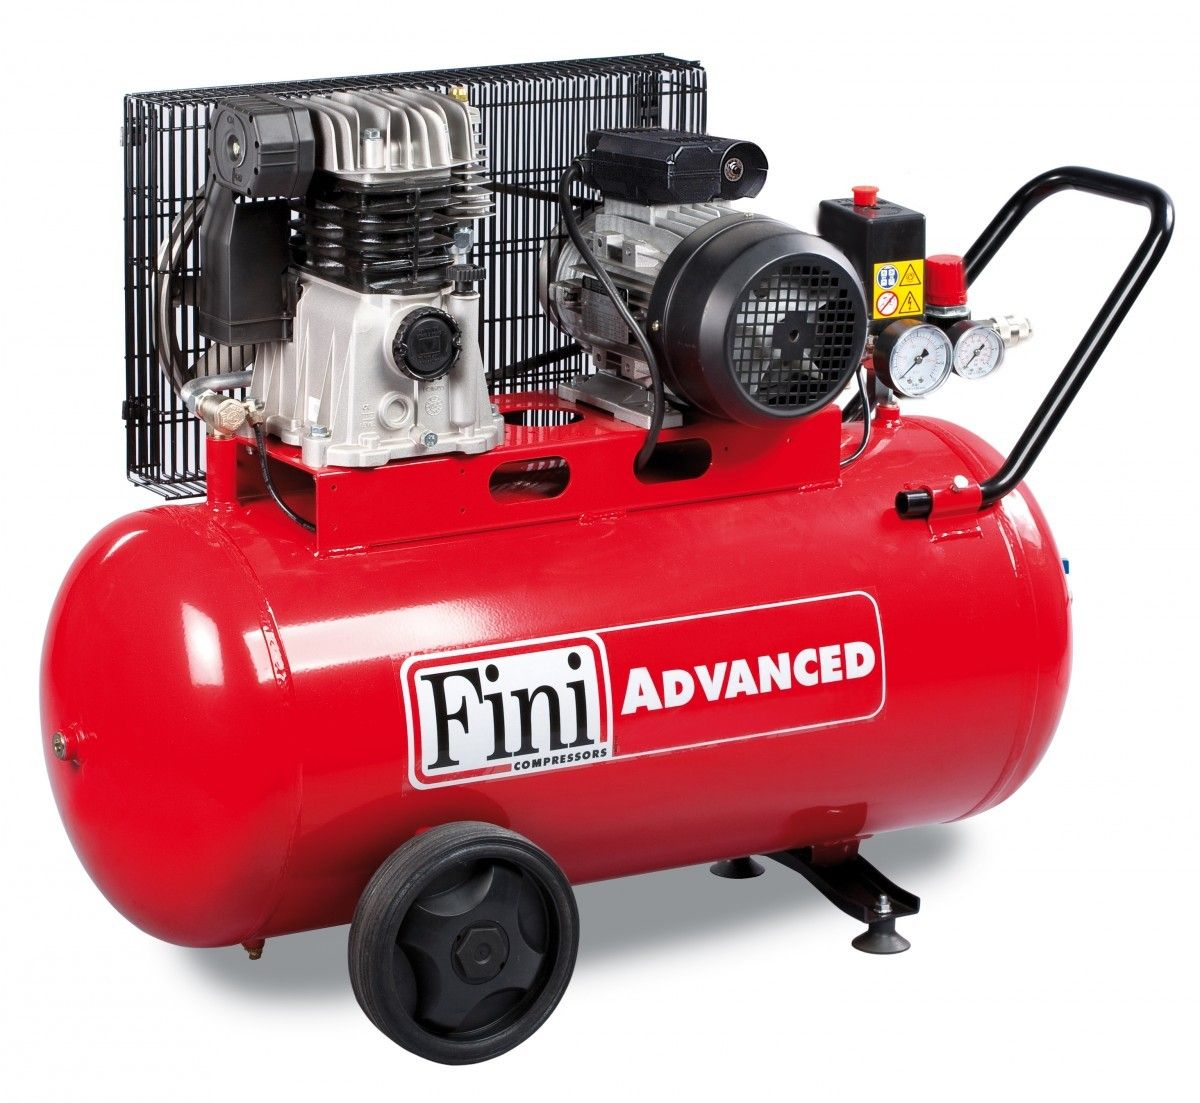 Fini MK103-200-3M ADVANCED